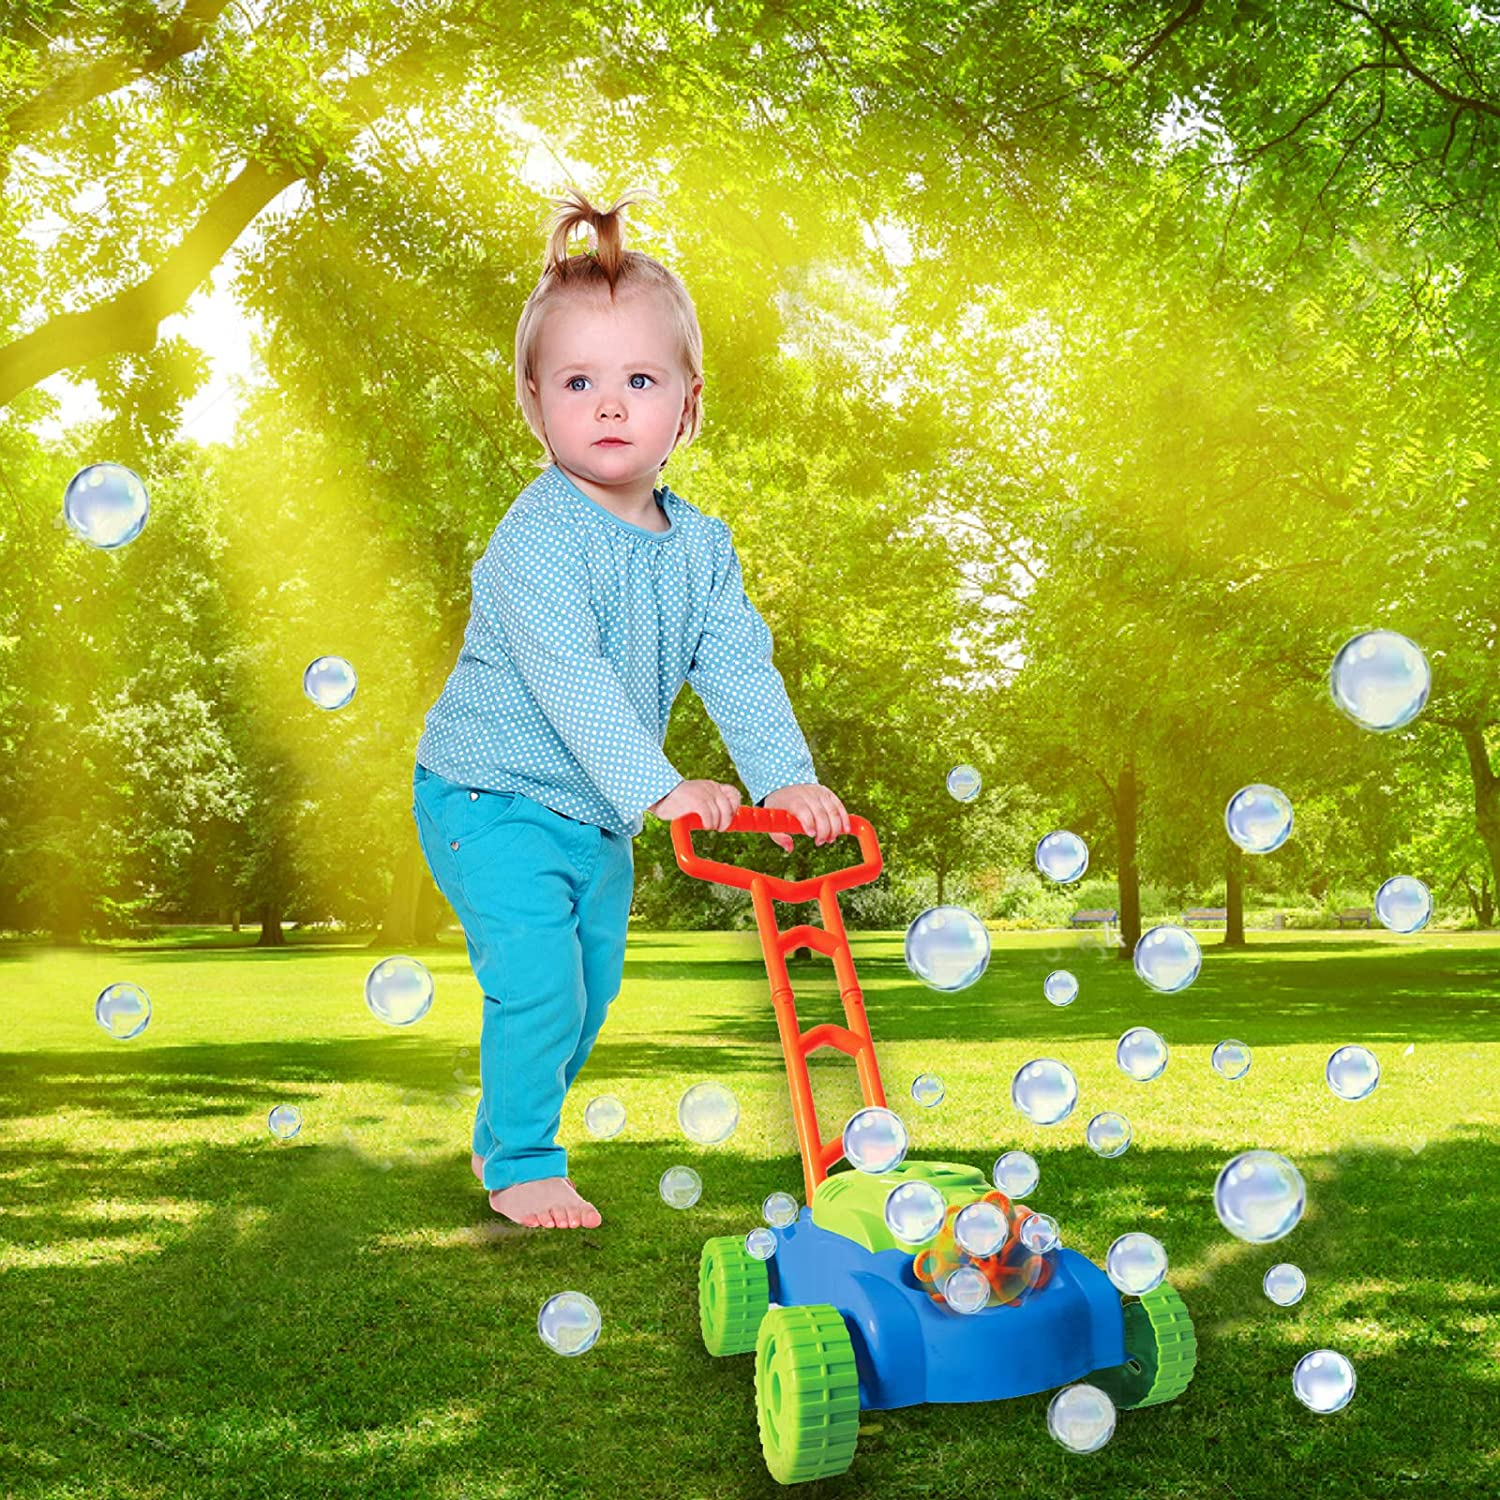 Top 7 Best Bubble Lawn Mower For Kids & Toddlers 2020 5